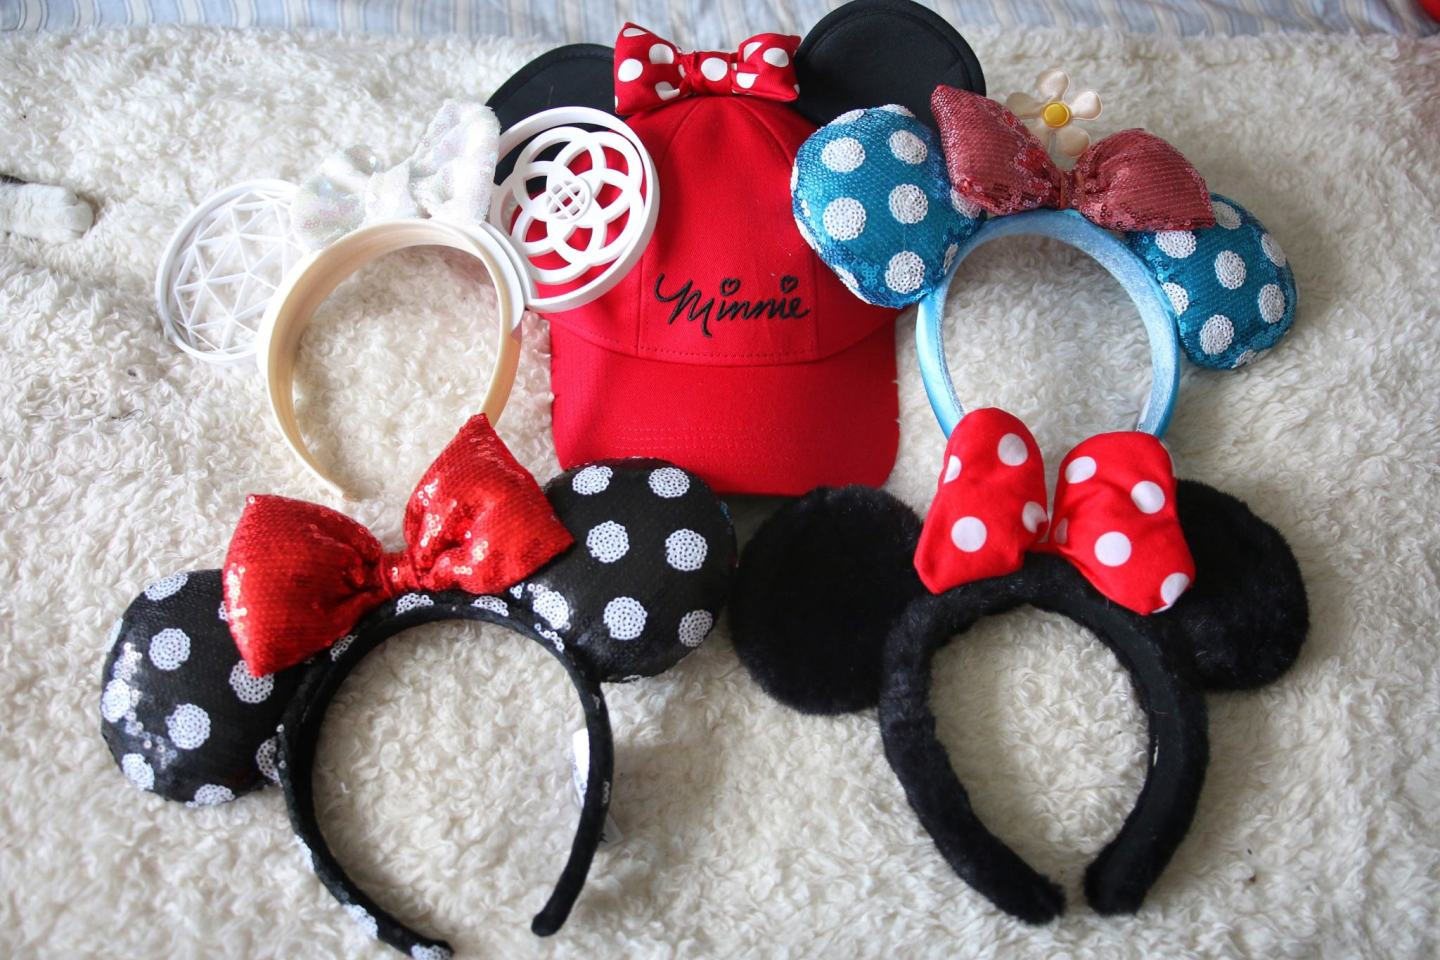 Best Disney Minnie Mouse Ears: Where To Shop